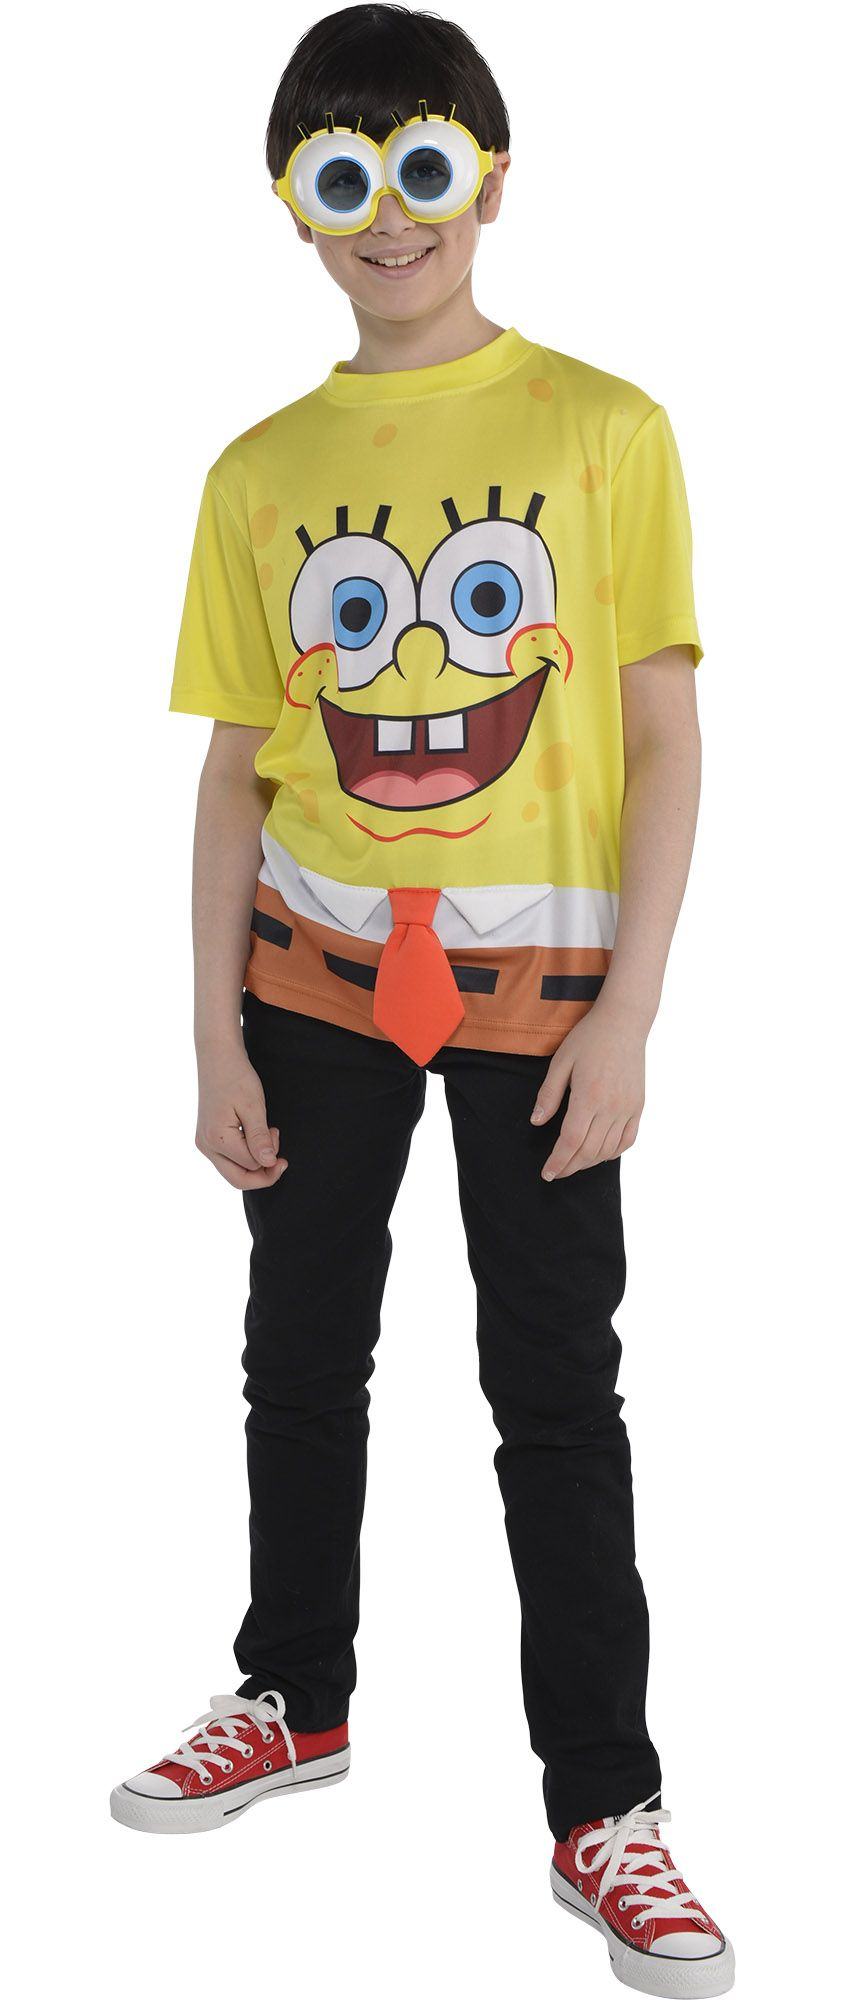 Create Your Look - Boy Sponge Bob